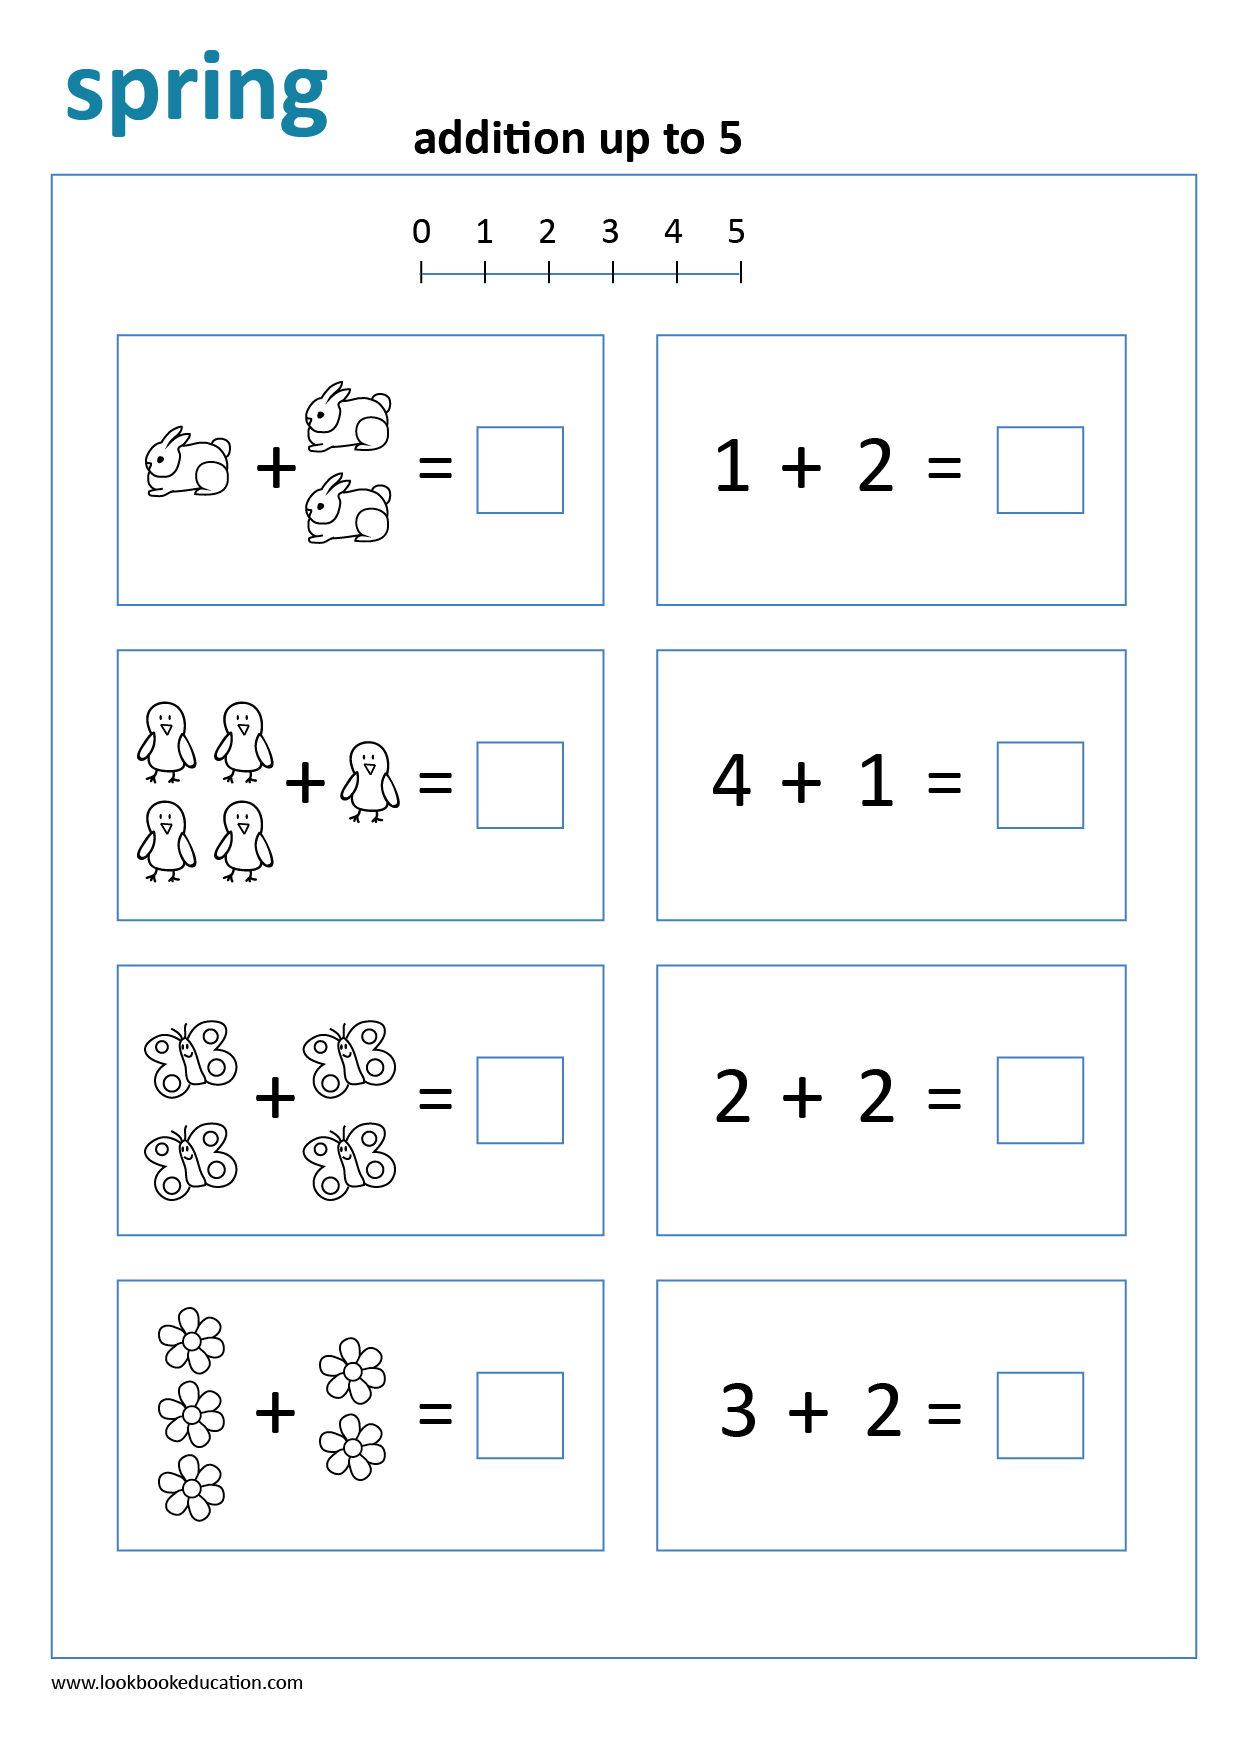 Worksheet Addition Spring